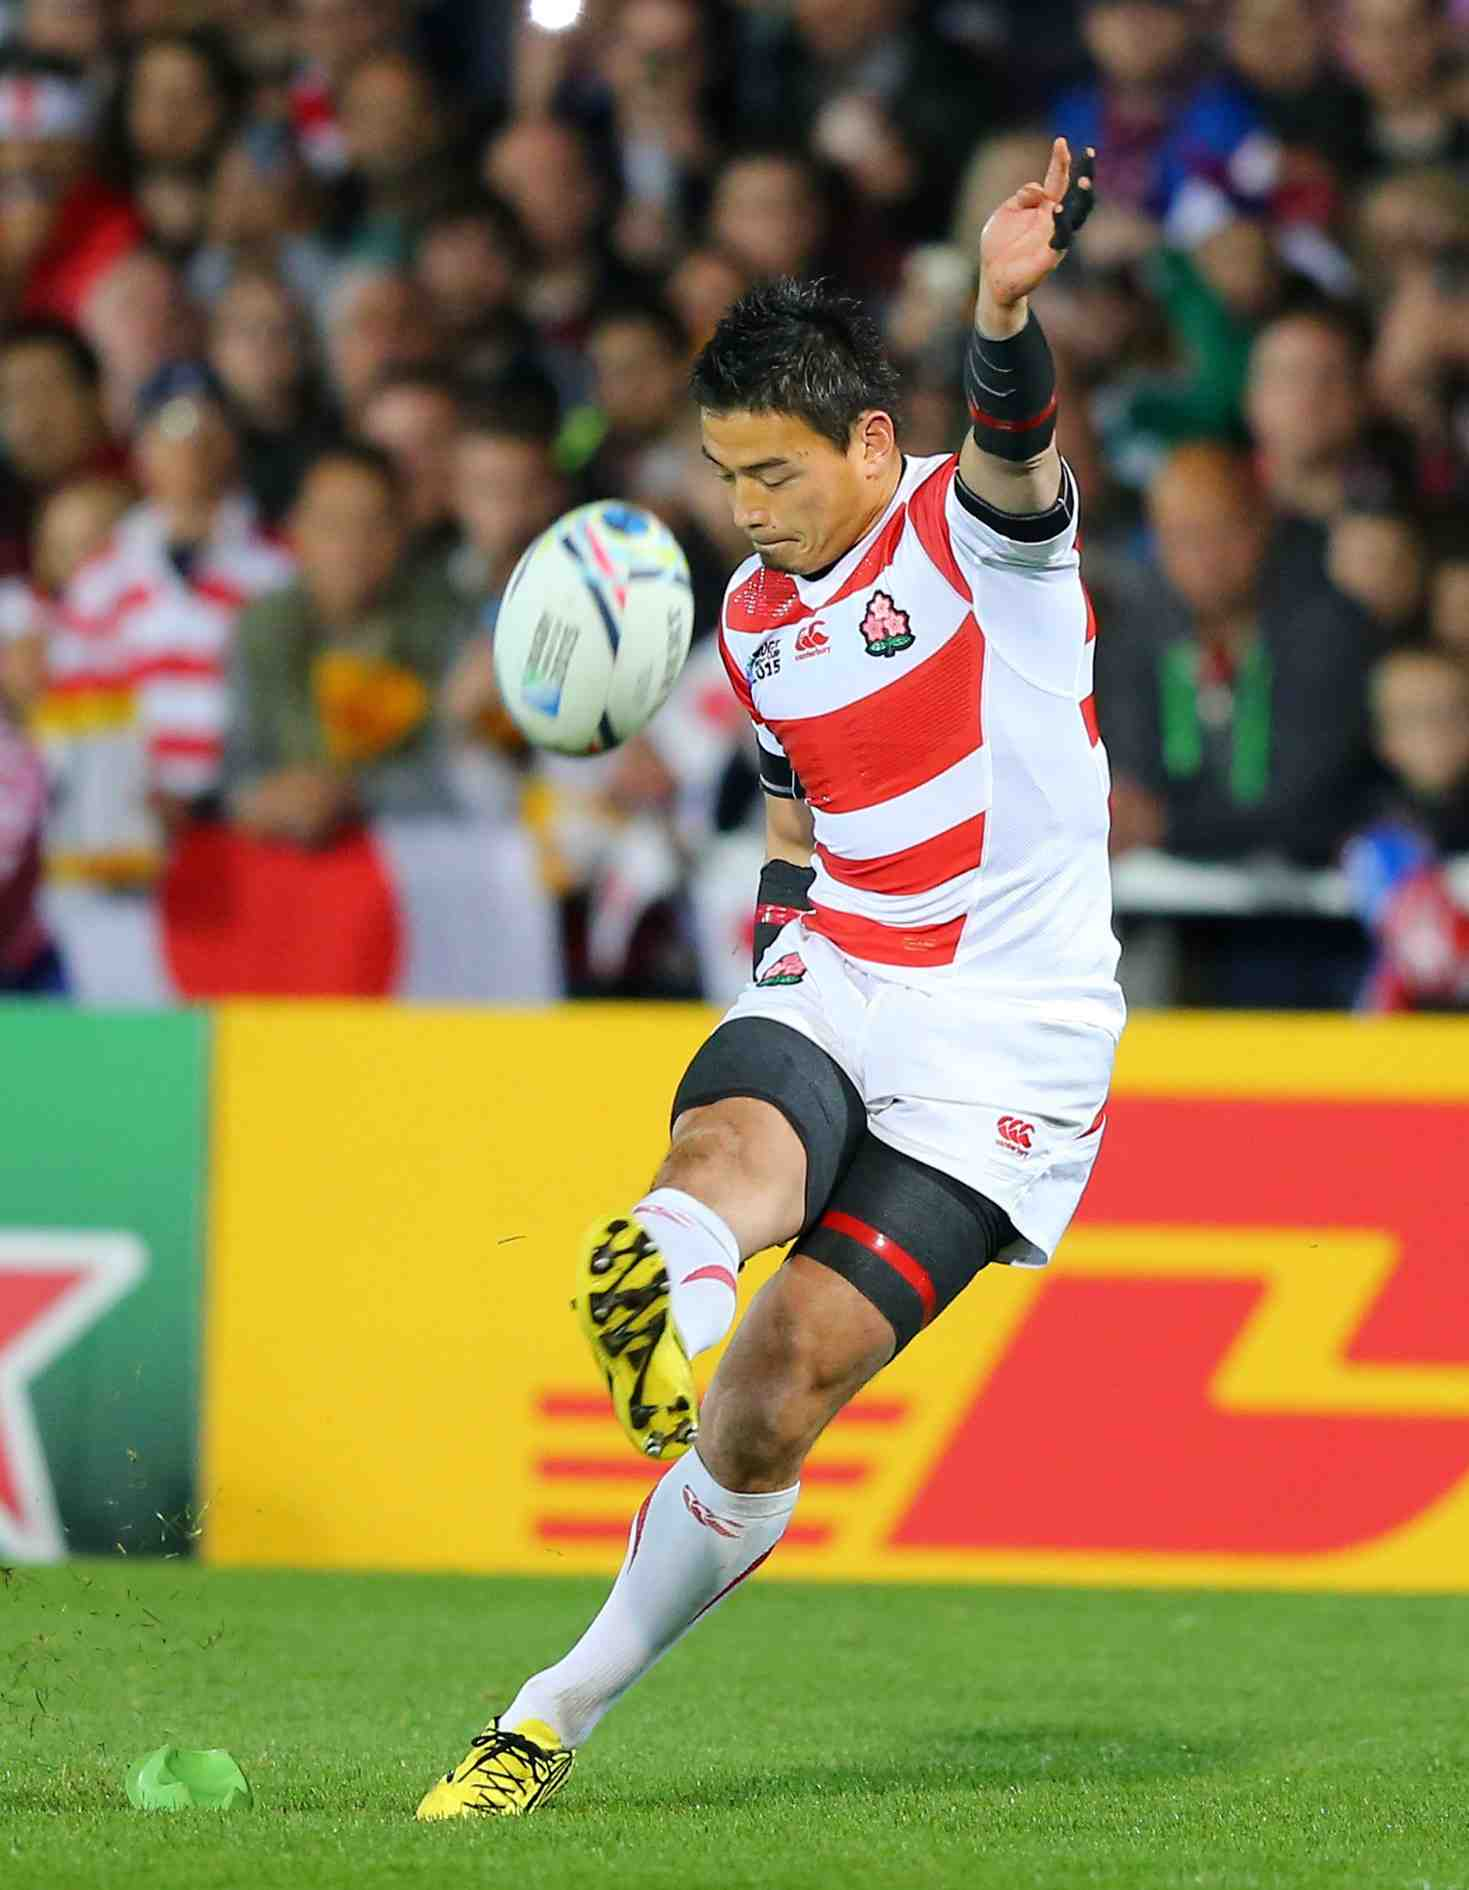 Rugby – Goromaru to retire after 2021 Top League season